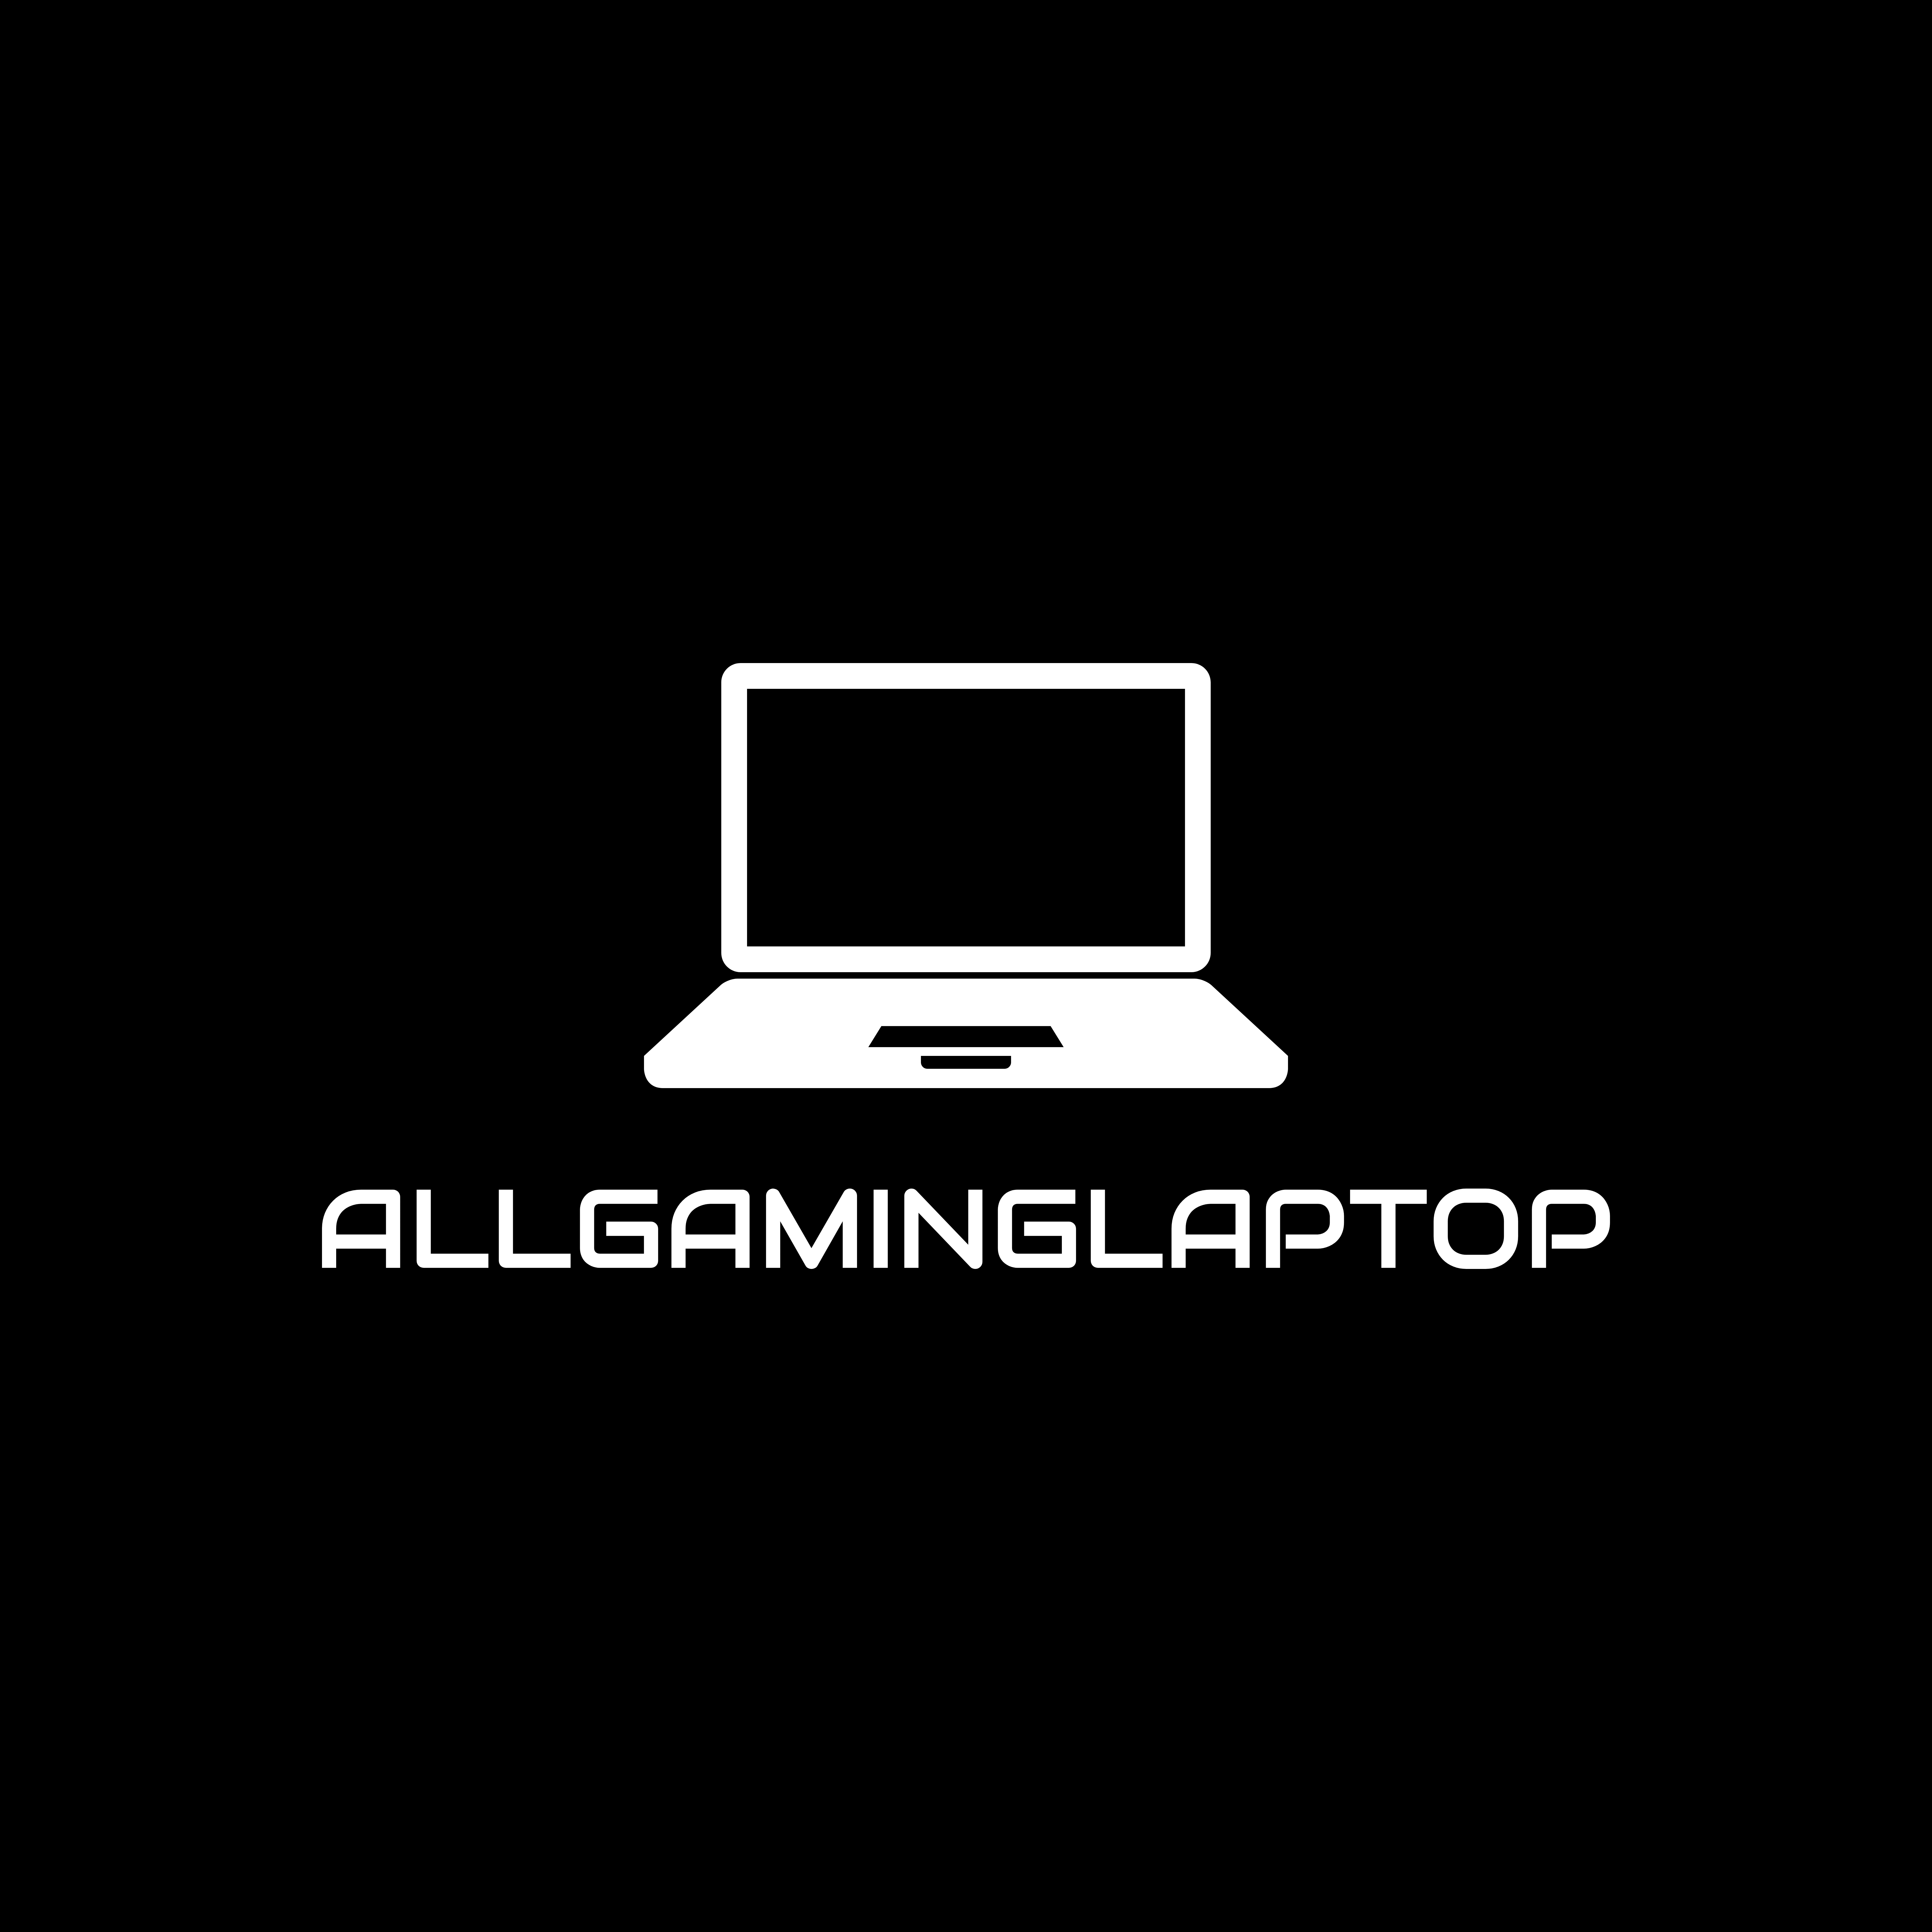 All Gaming Laptop